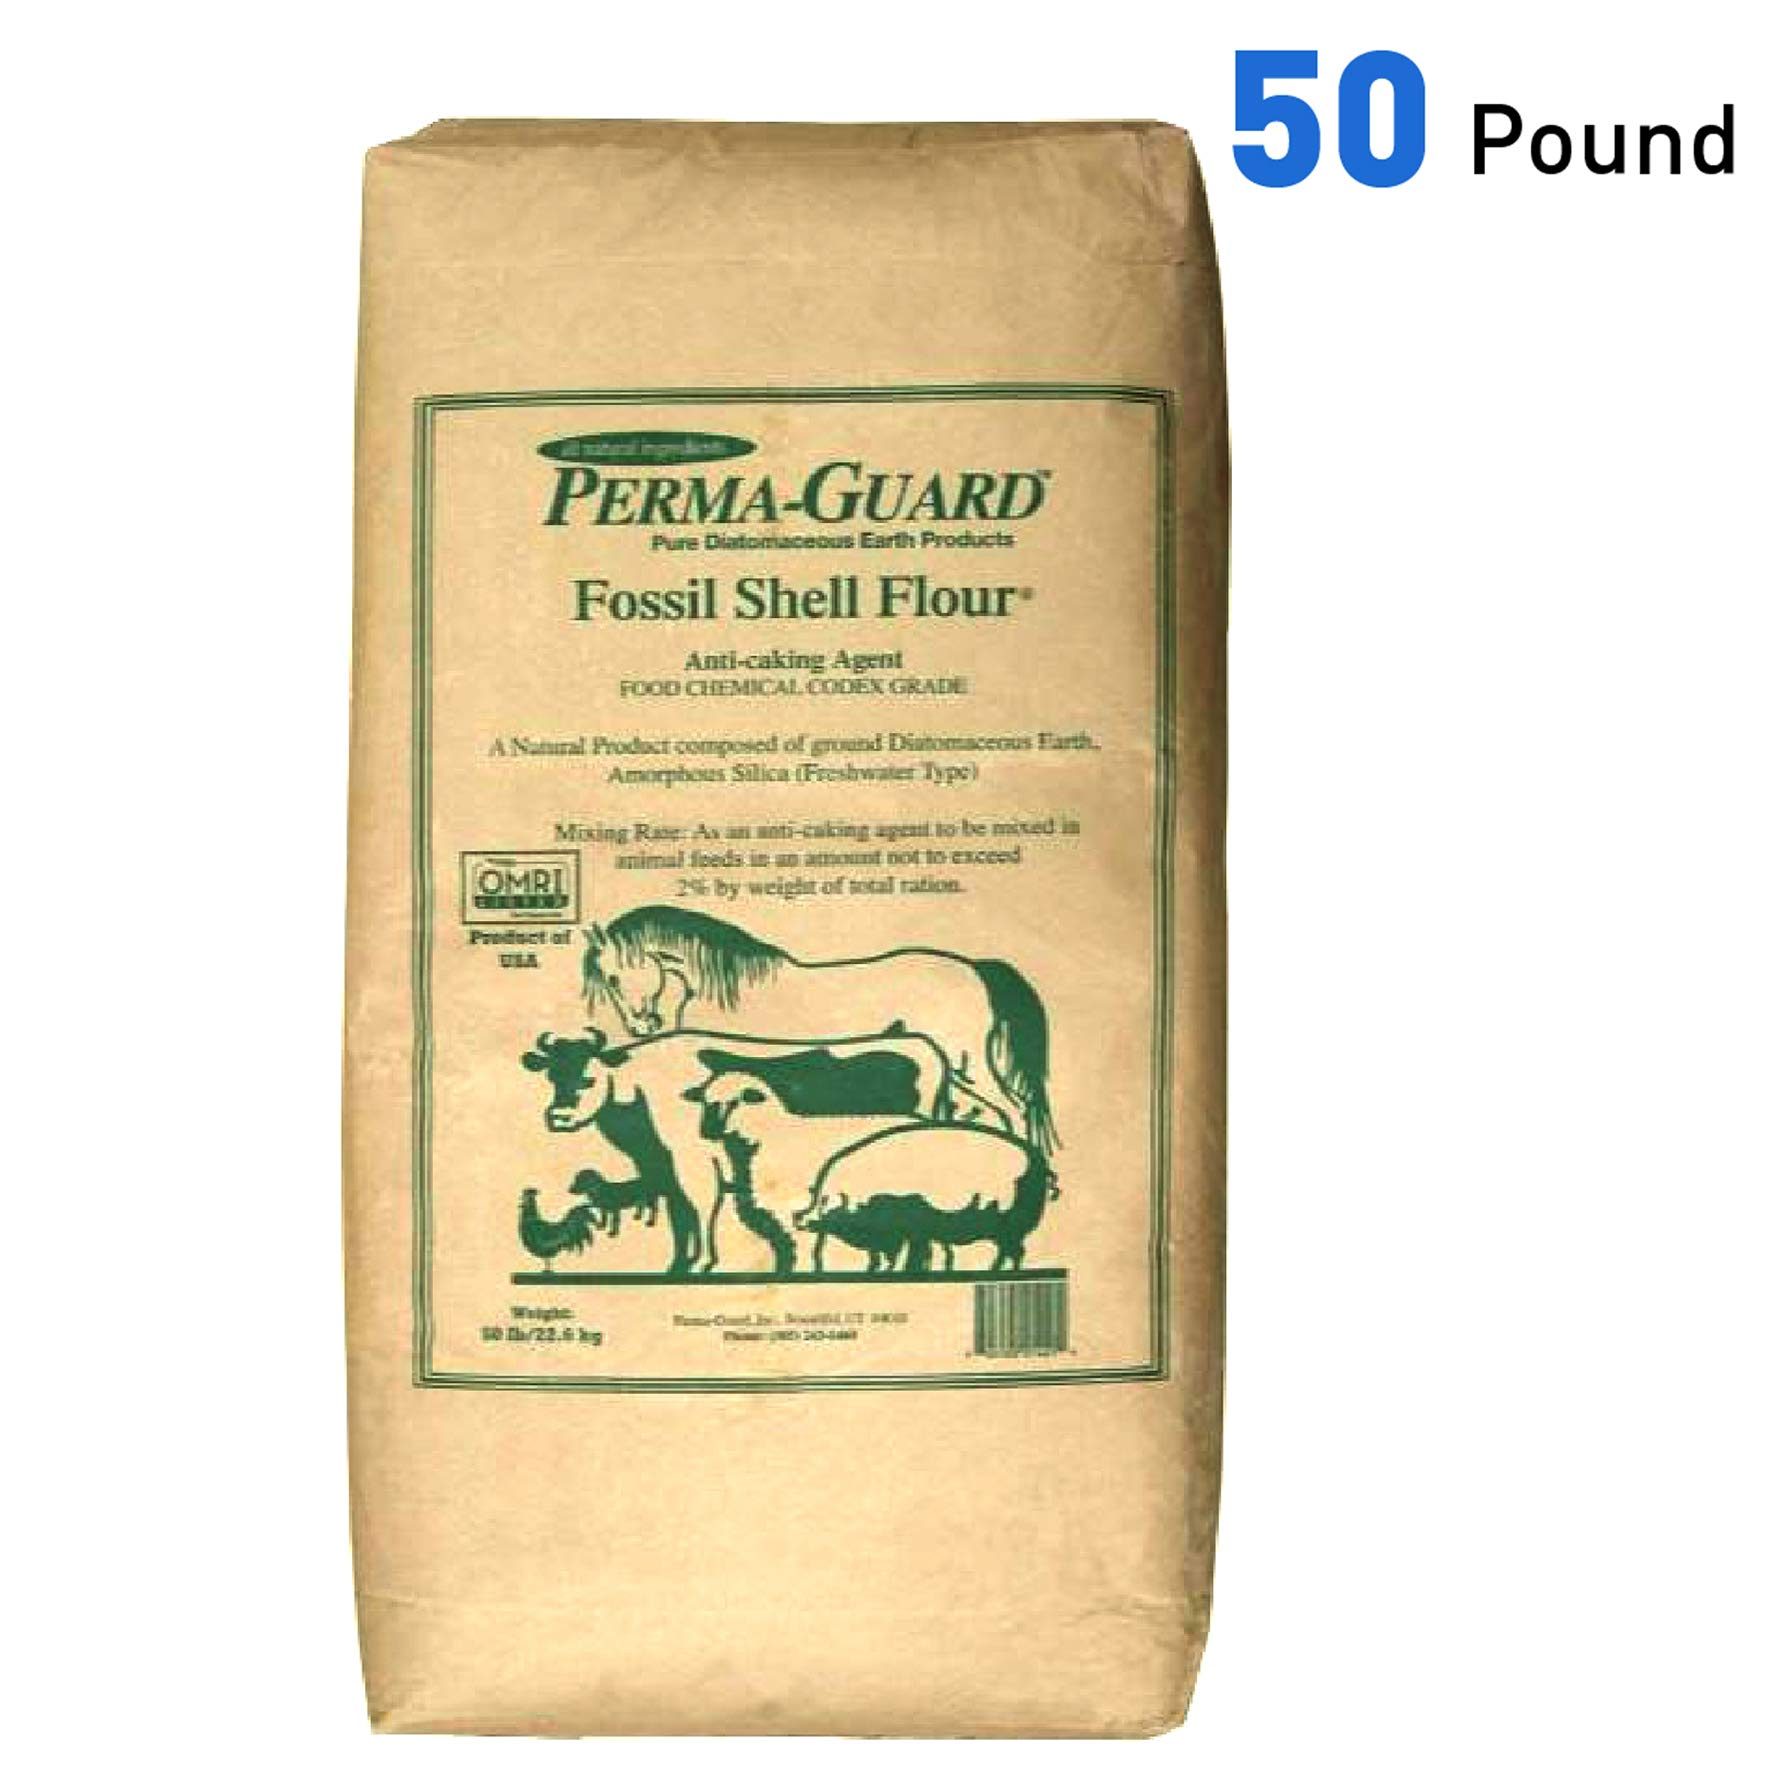 Perma Guard EGP-DE-50C erma Guard Diatomaceous Earth-DE Food Grade, 50 lb, White by Perma-Guard (Image #1)